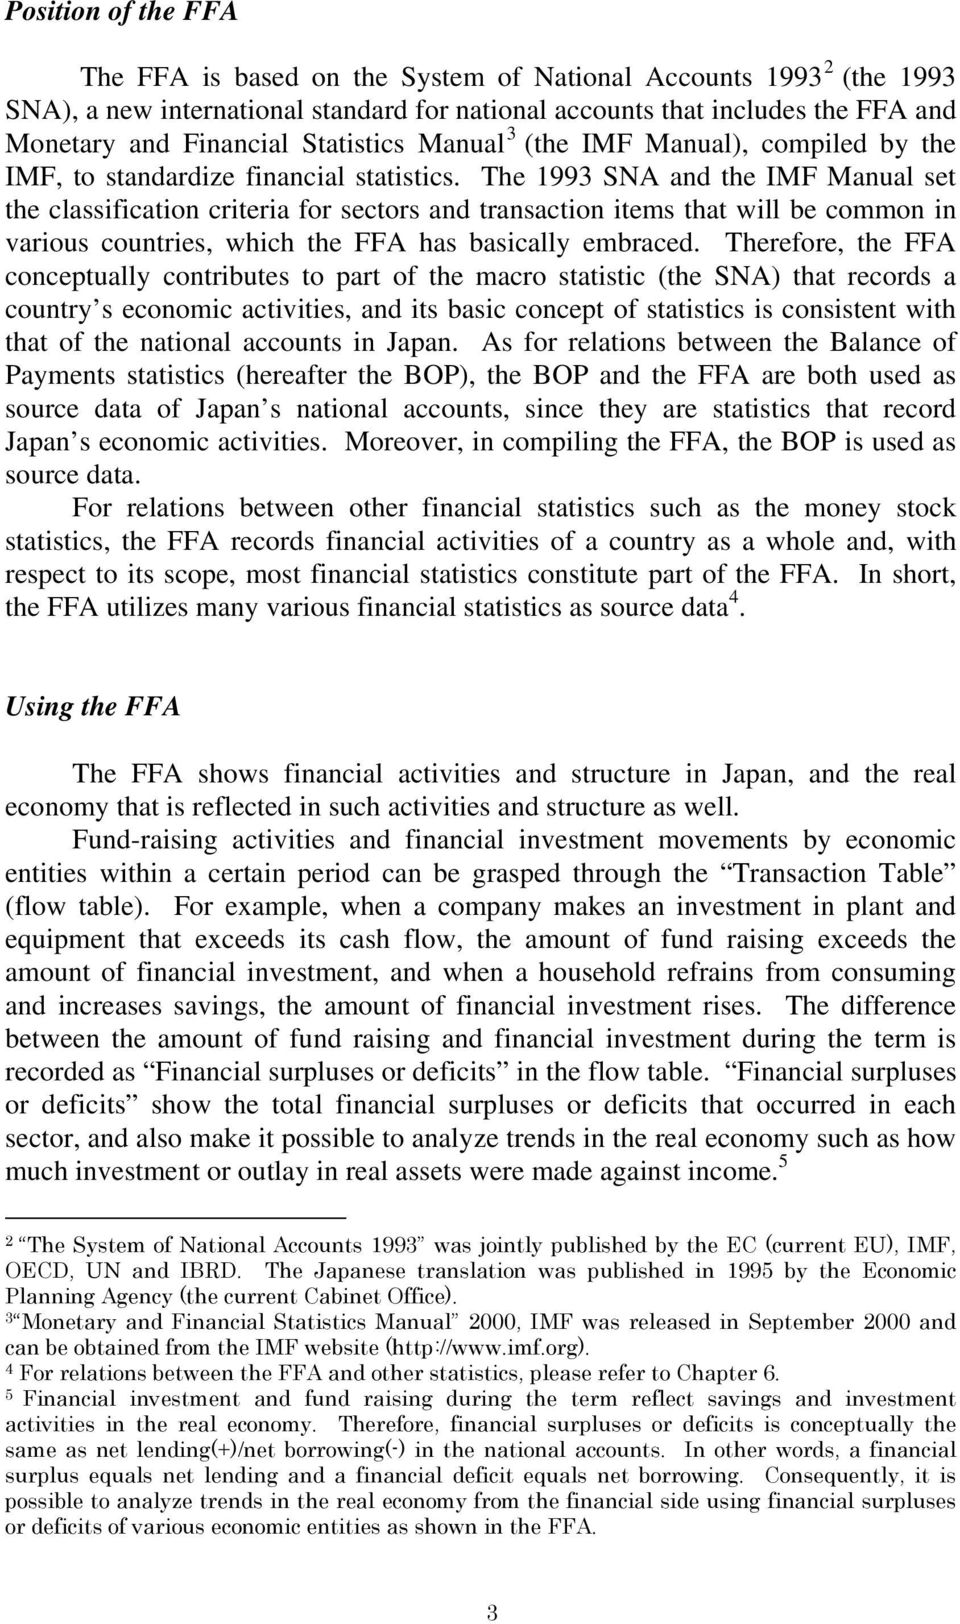 The 1993 SNA and the IMF Manual set the classification criteria for sectors and transaction items that will be common in various countries, which the FFA has basically embraced.